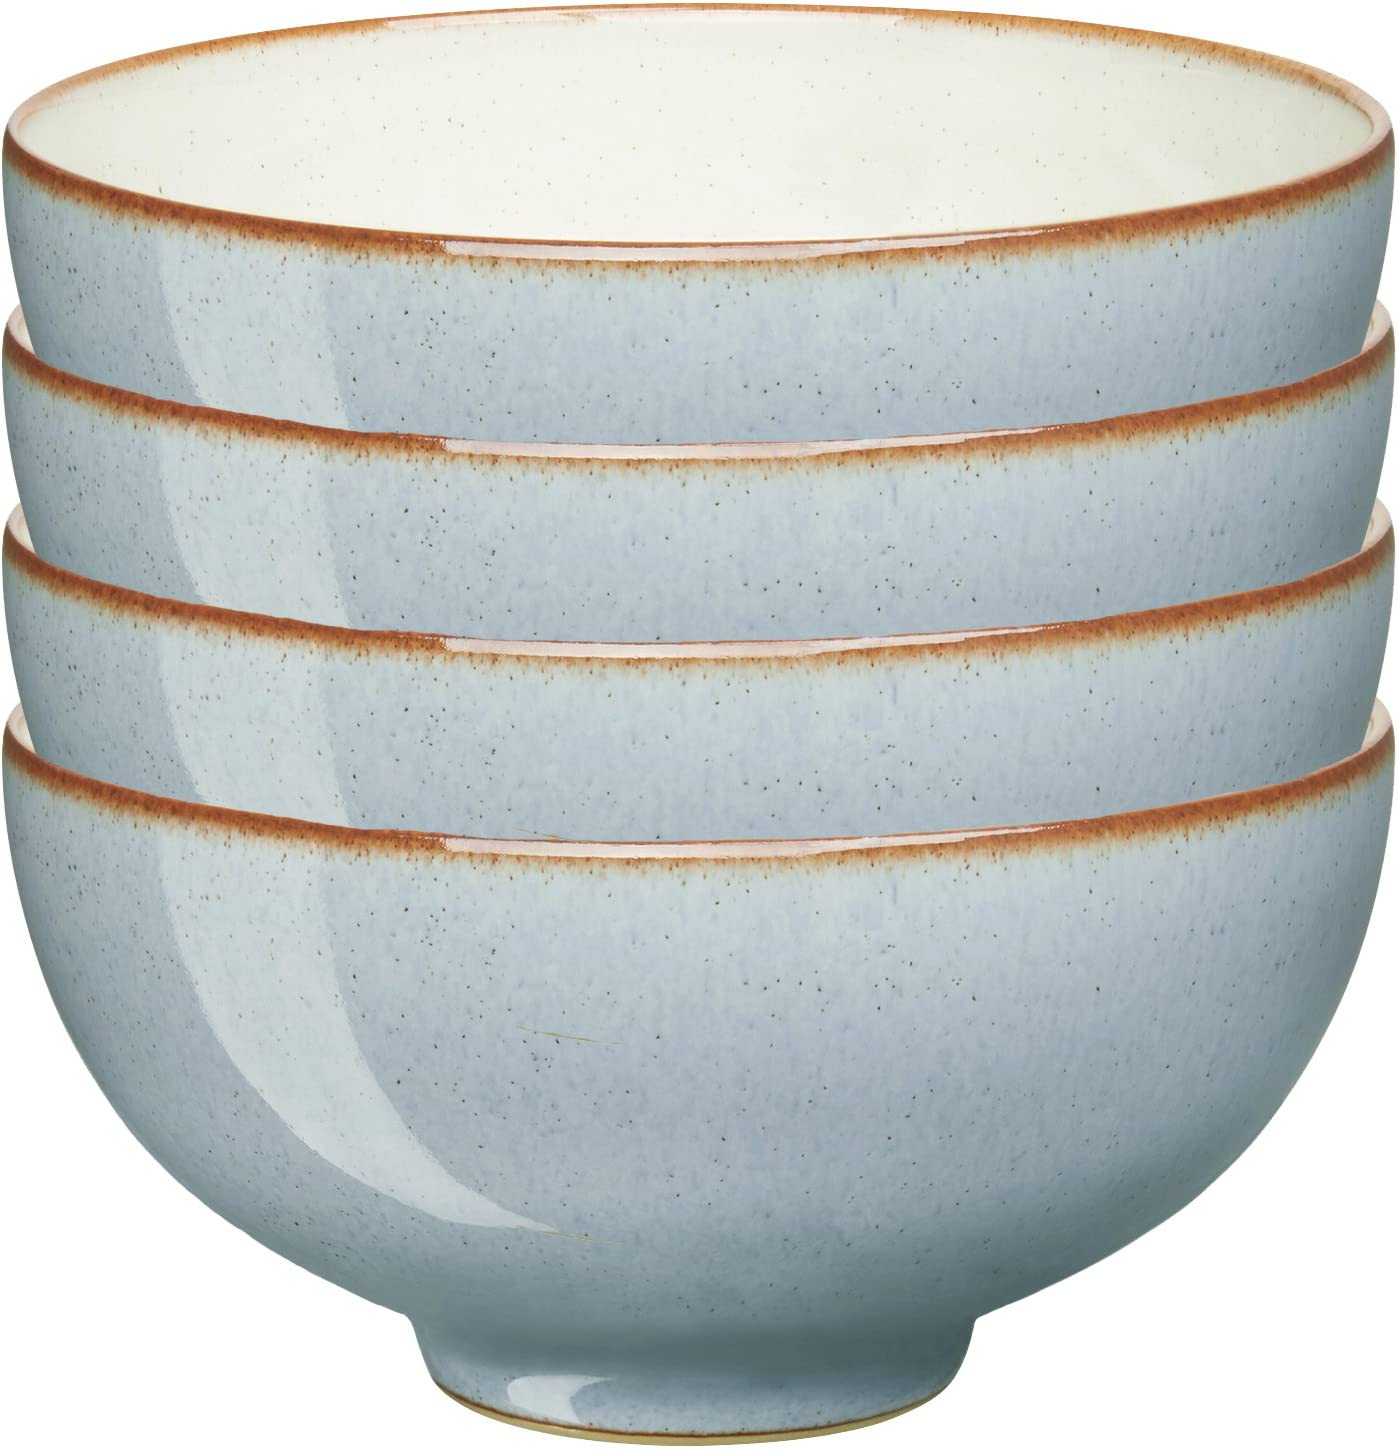 Denby USA Heritage Terrace Rice 4 Bowls Multicolor Set of New Orleans Mall Austin Mall